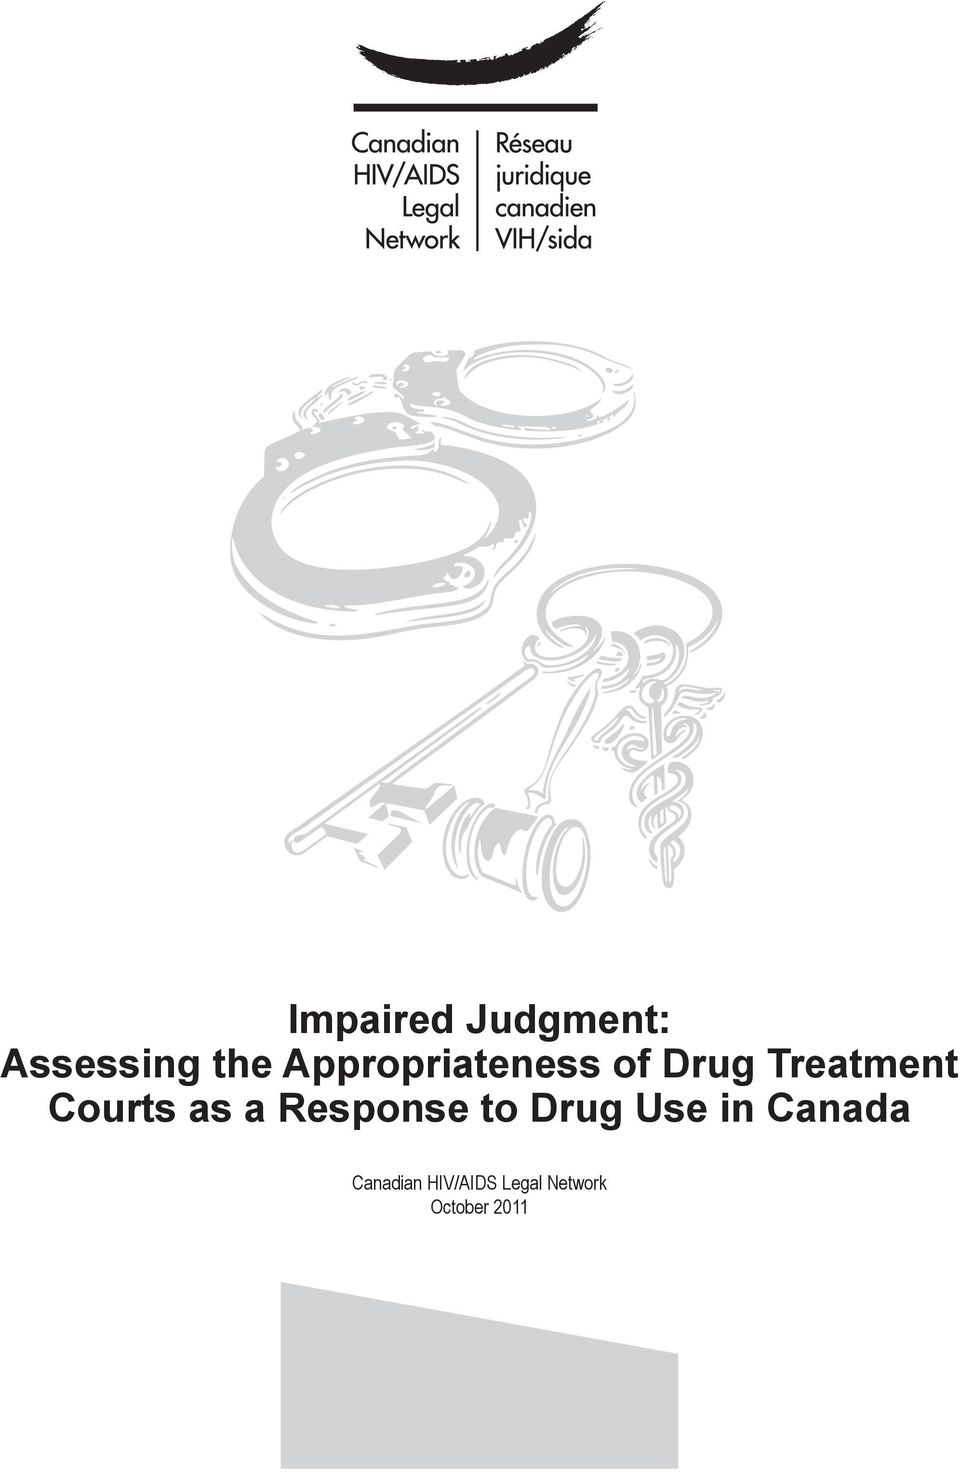 Courts as a Response to Drug Use in